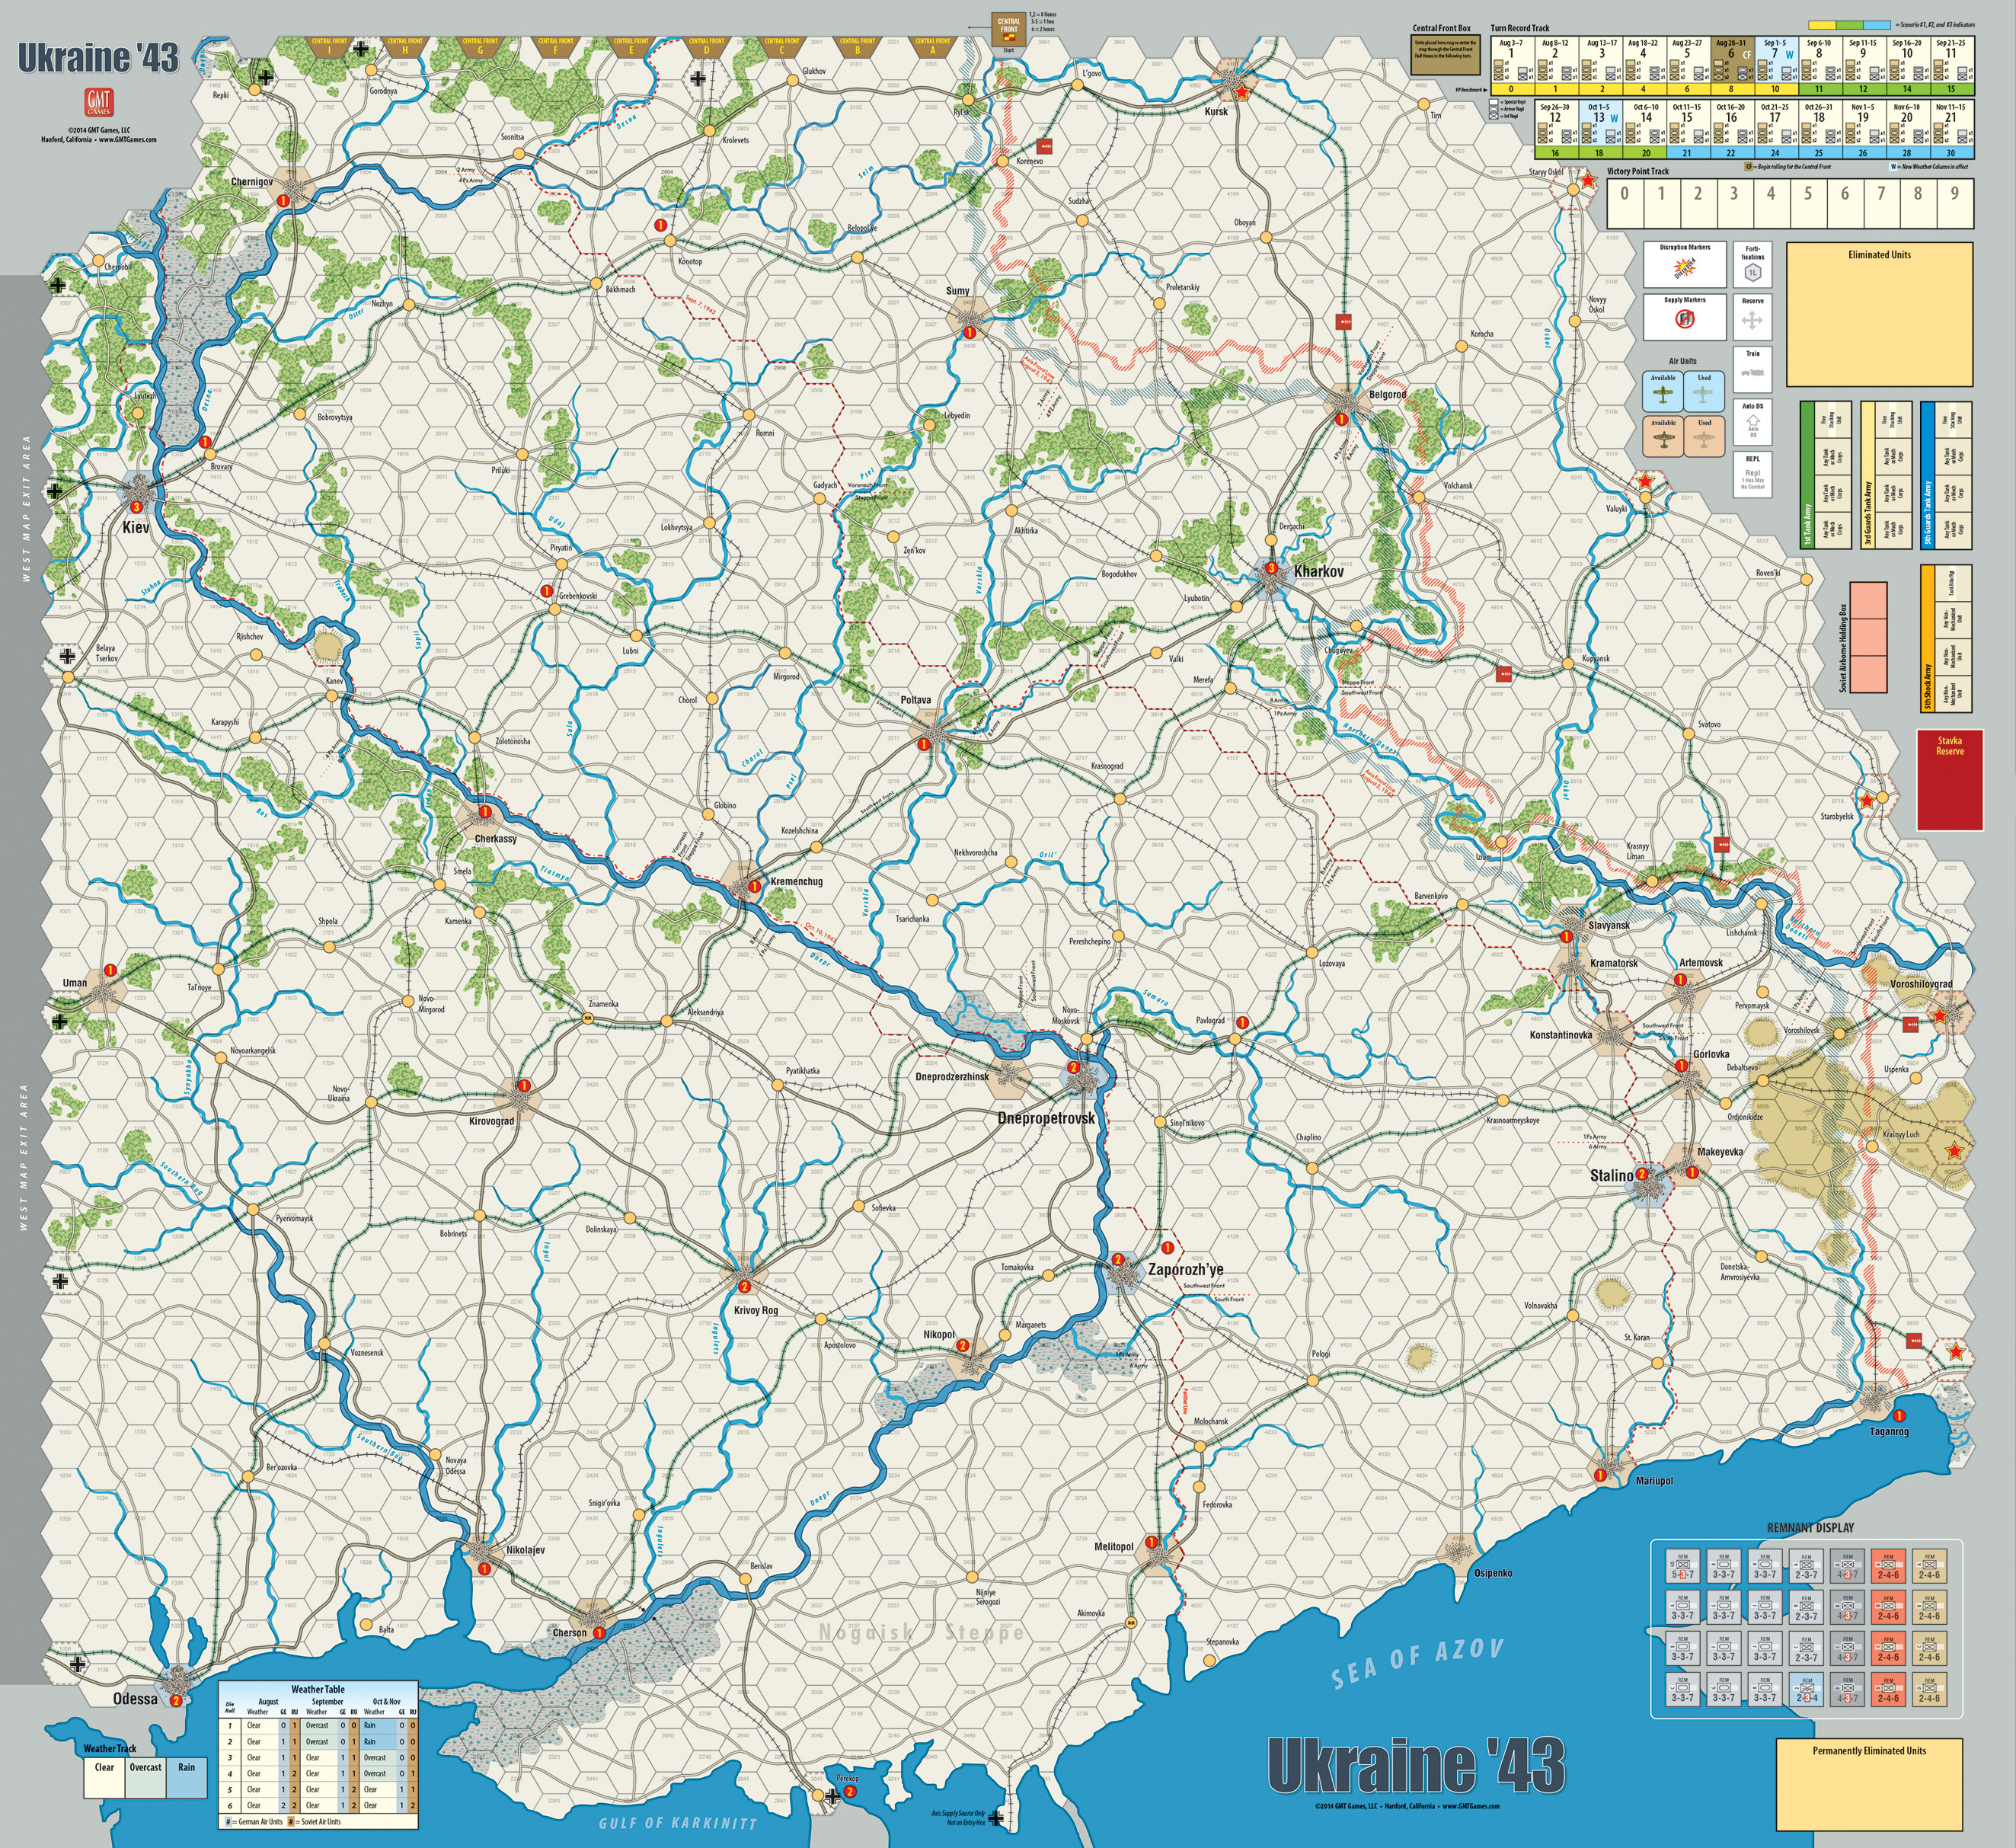 Gmt games ukraine 43 2nd edition game map gumiabroncs Choice Image